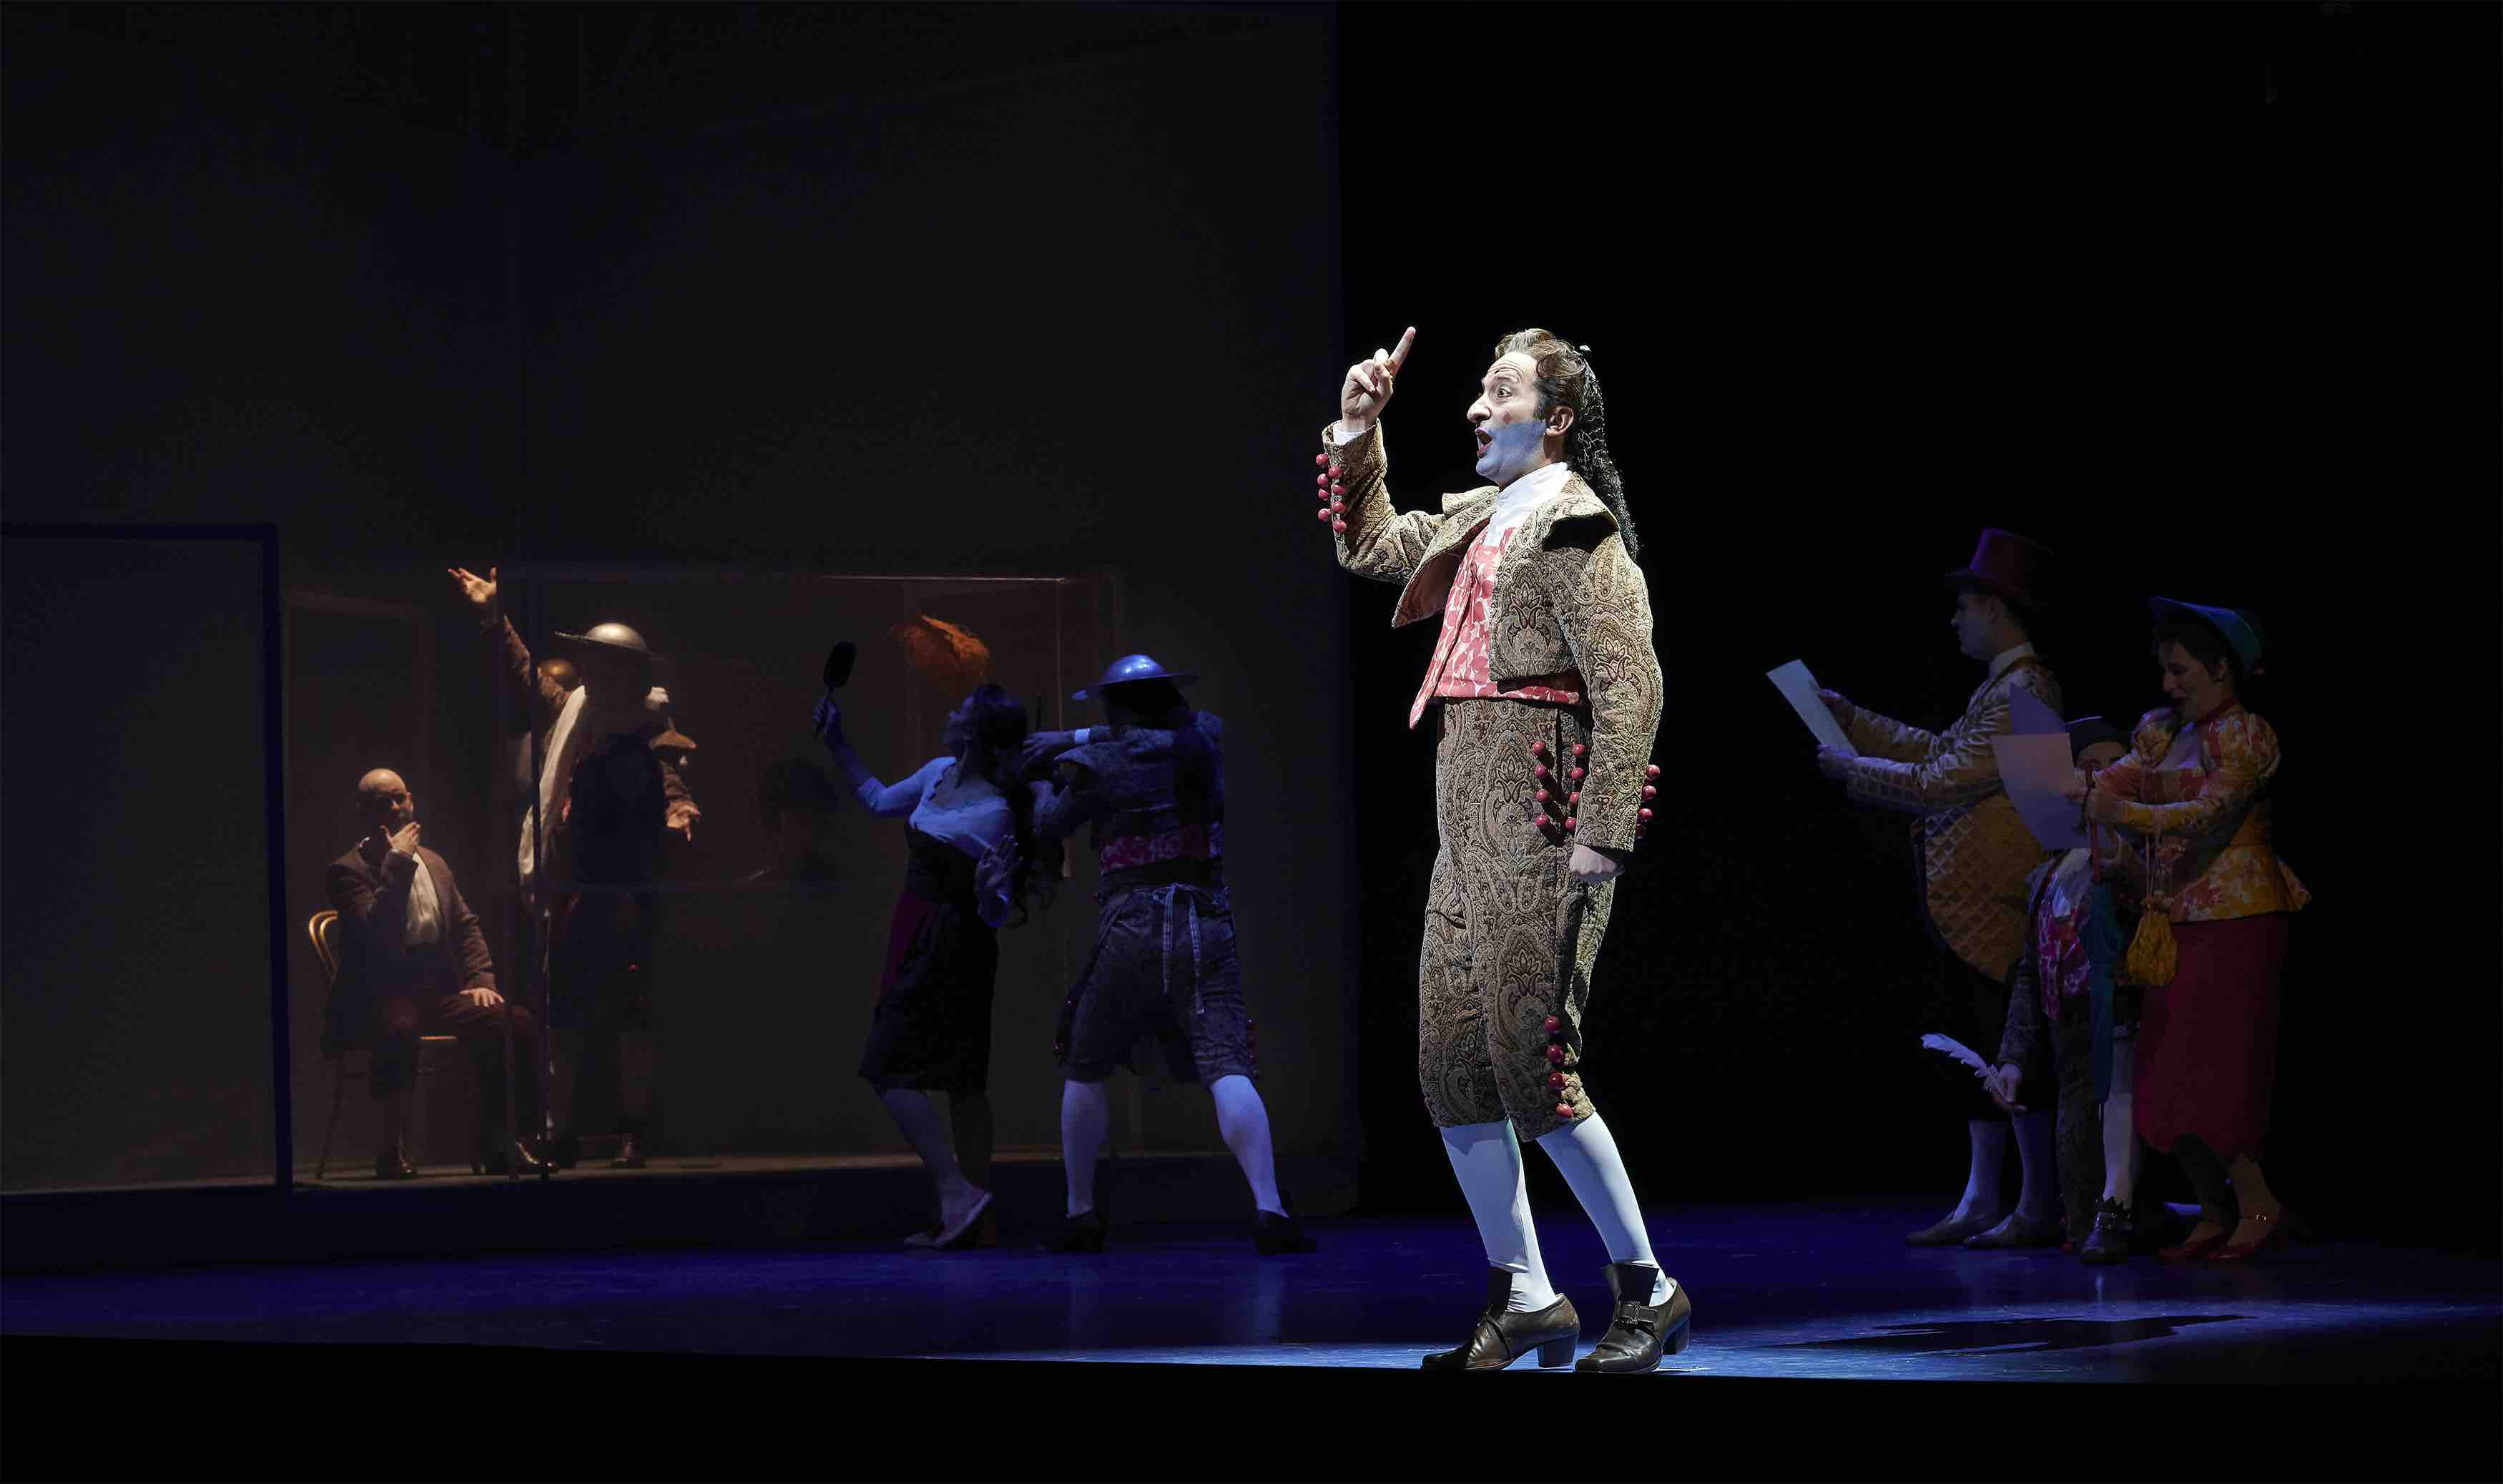 Vito Priante as Figaro in the Canadian Opera Company's production of The Barber of Seville